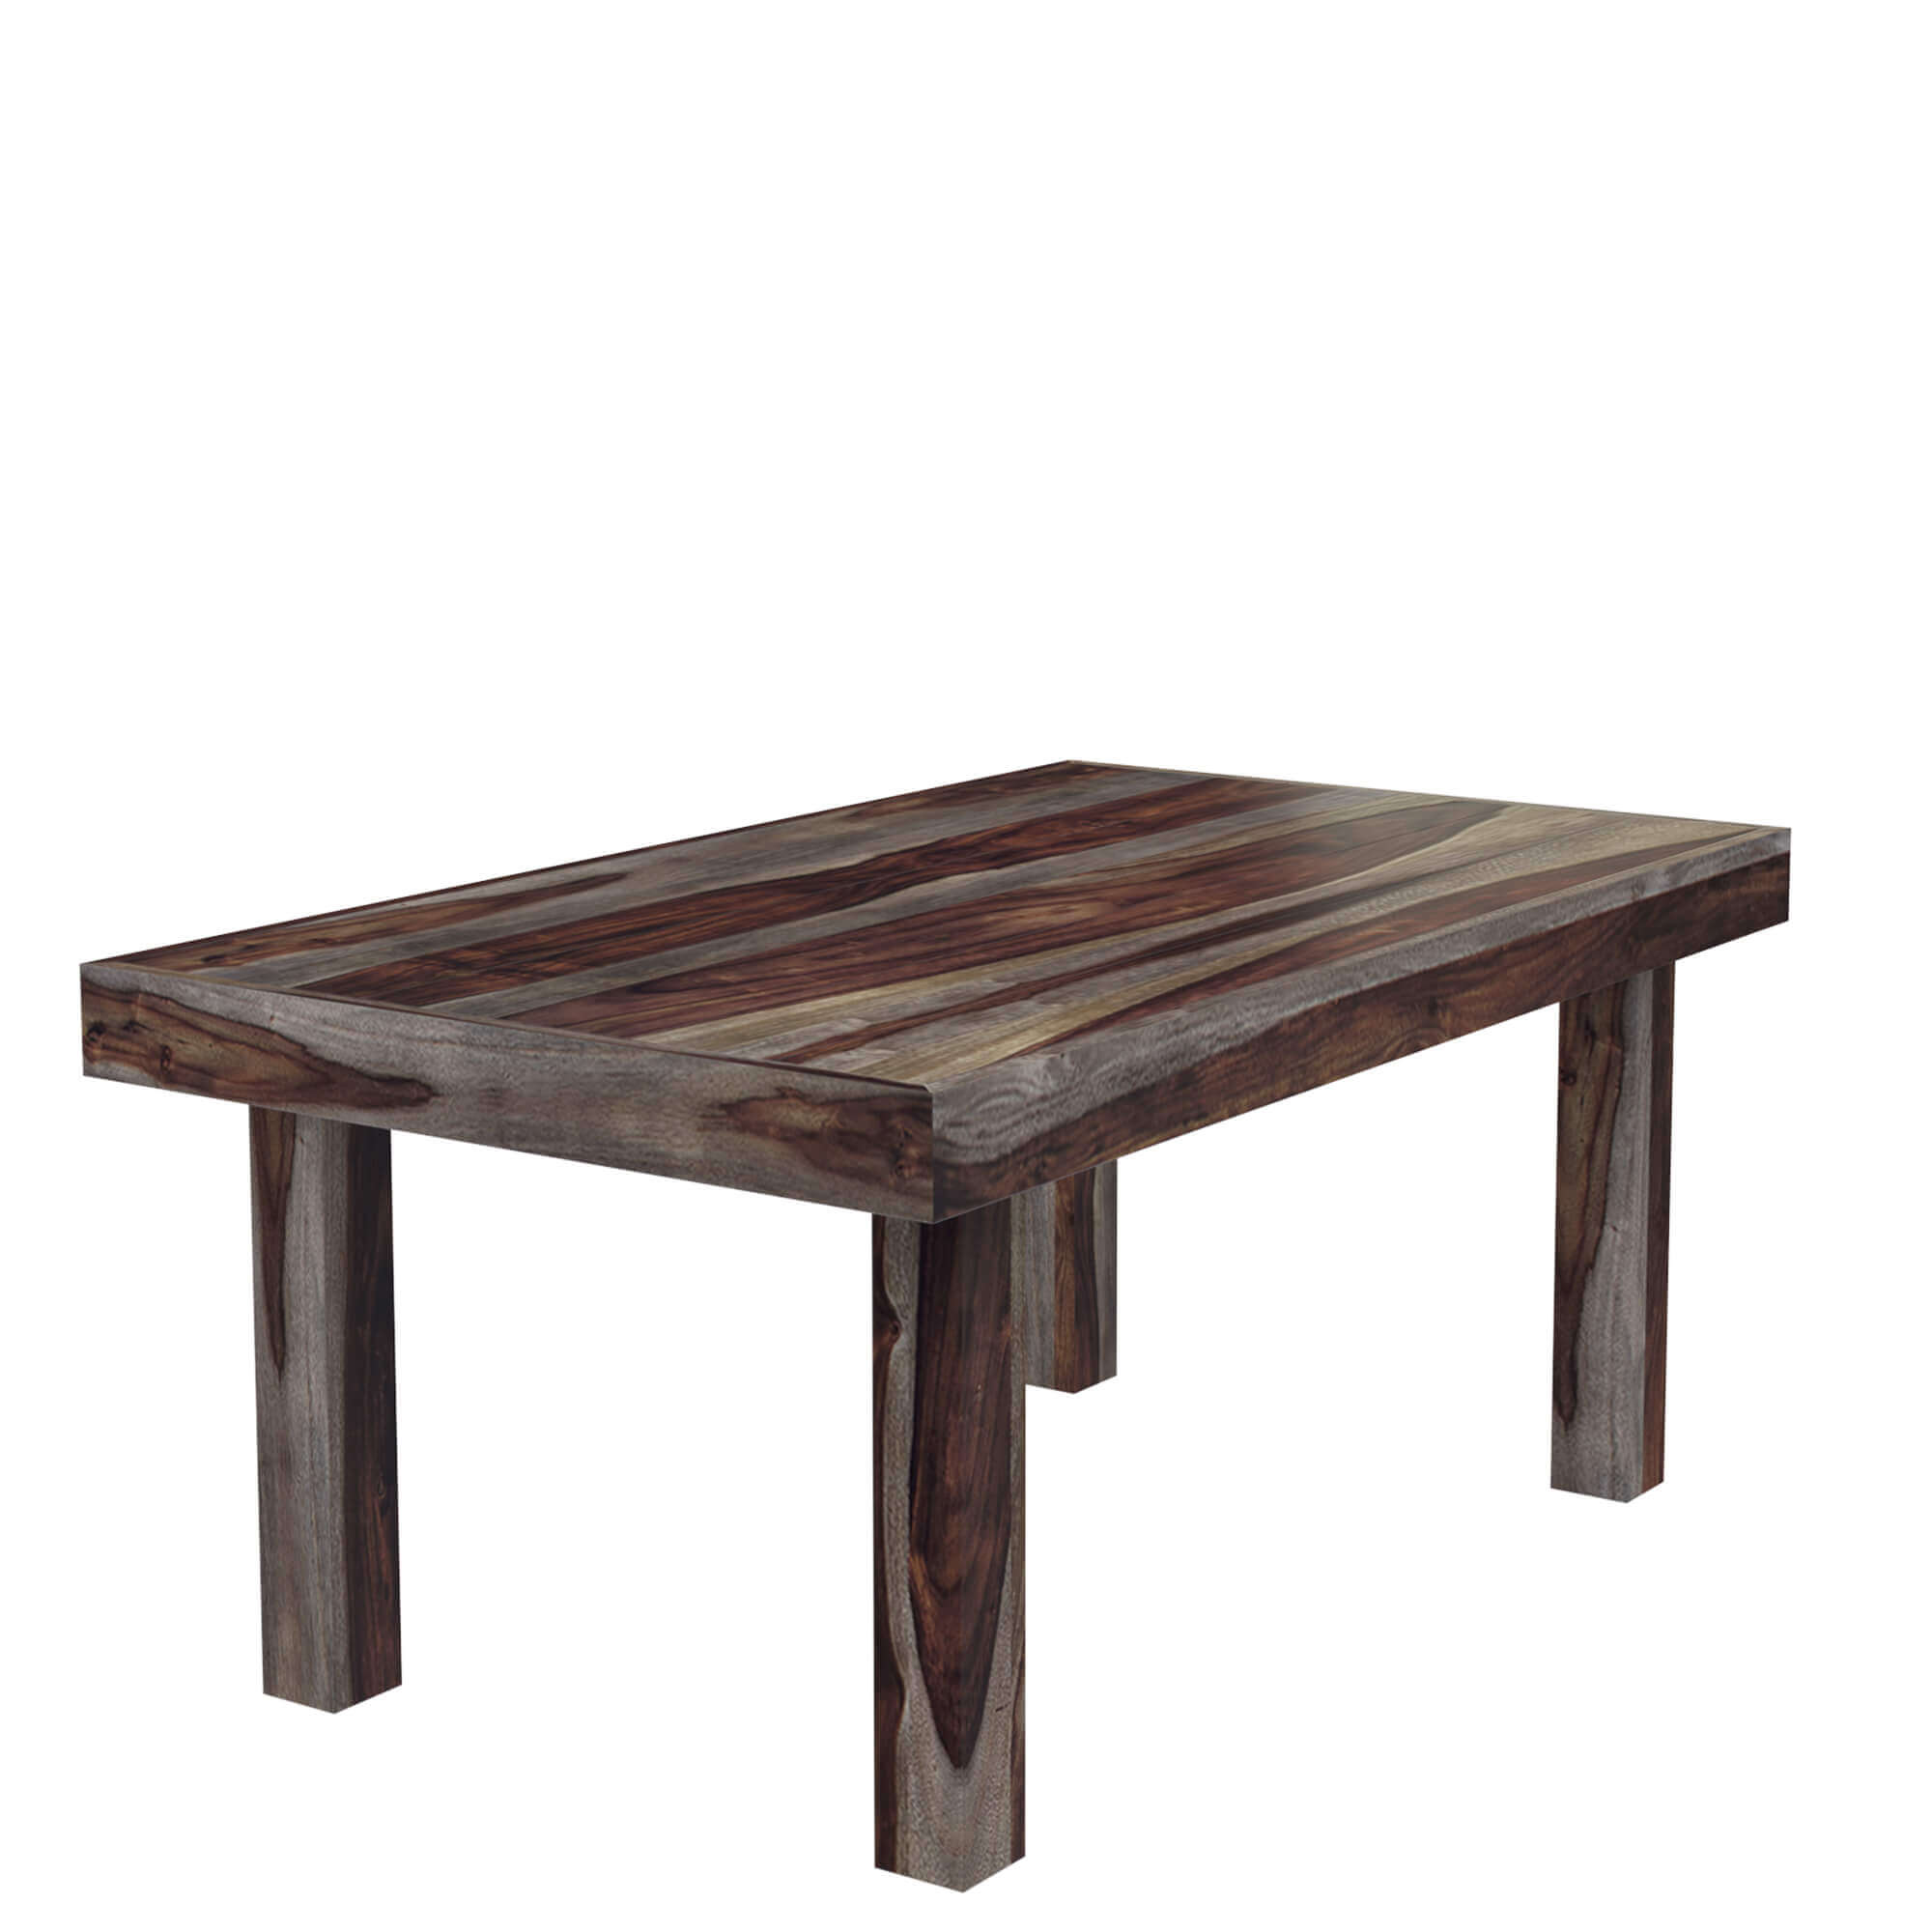 Frisco Modern Solid Wood Rectangular Rustic Dining Room Table : 2626 from www.sierralivingconcepts.com size 1200 x 1200 jpeg 97kB